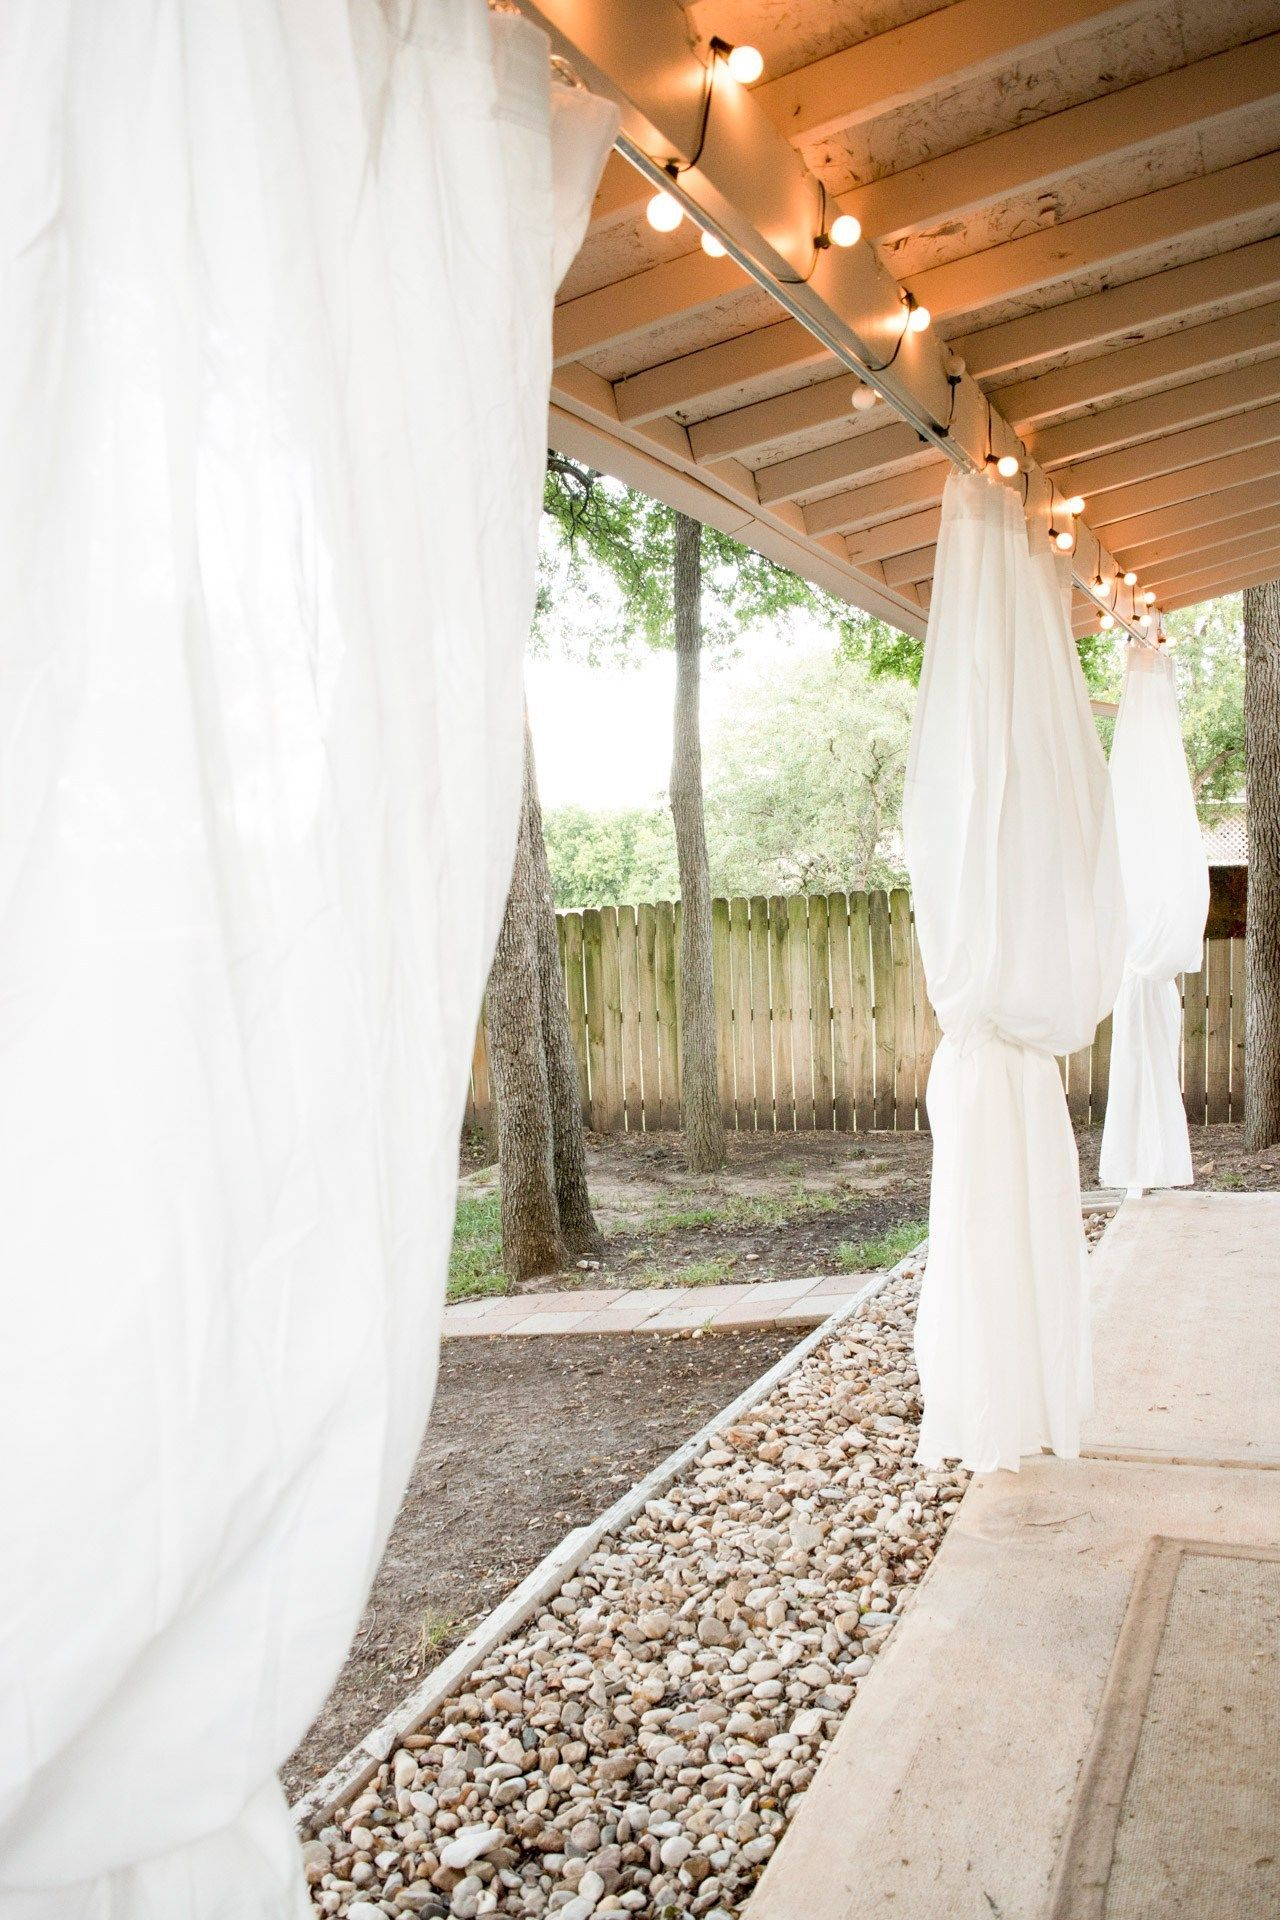 Outdoor Curtains An Inexpensive Ikea Patio Makeover Outdoor